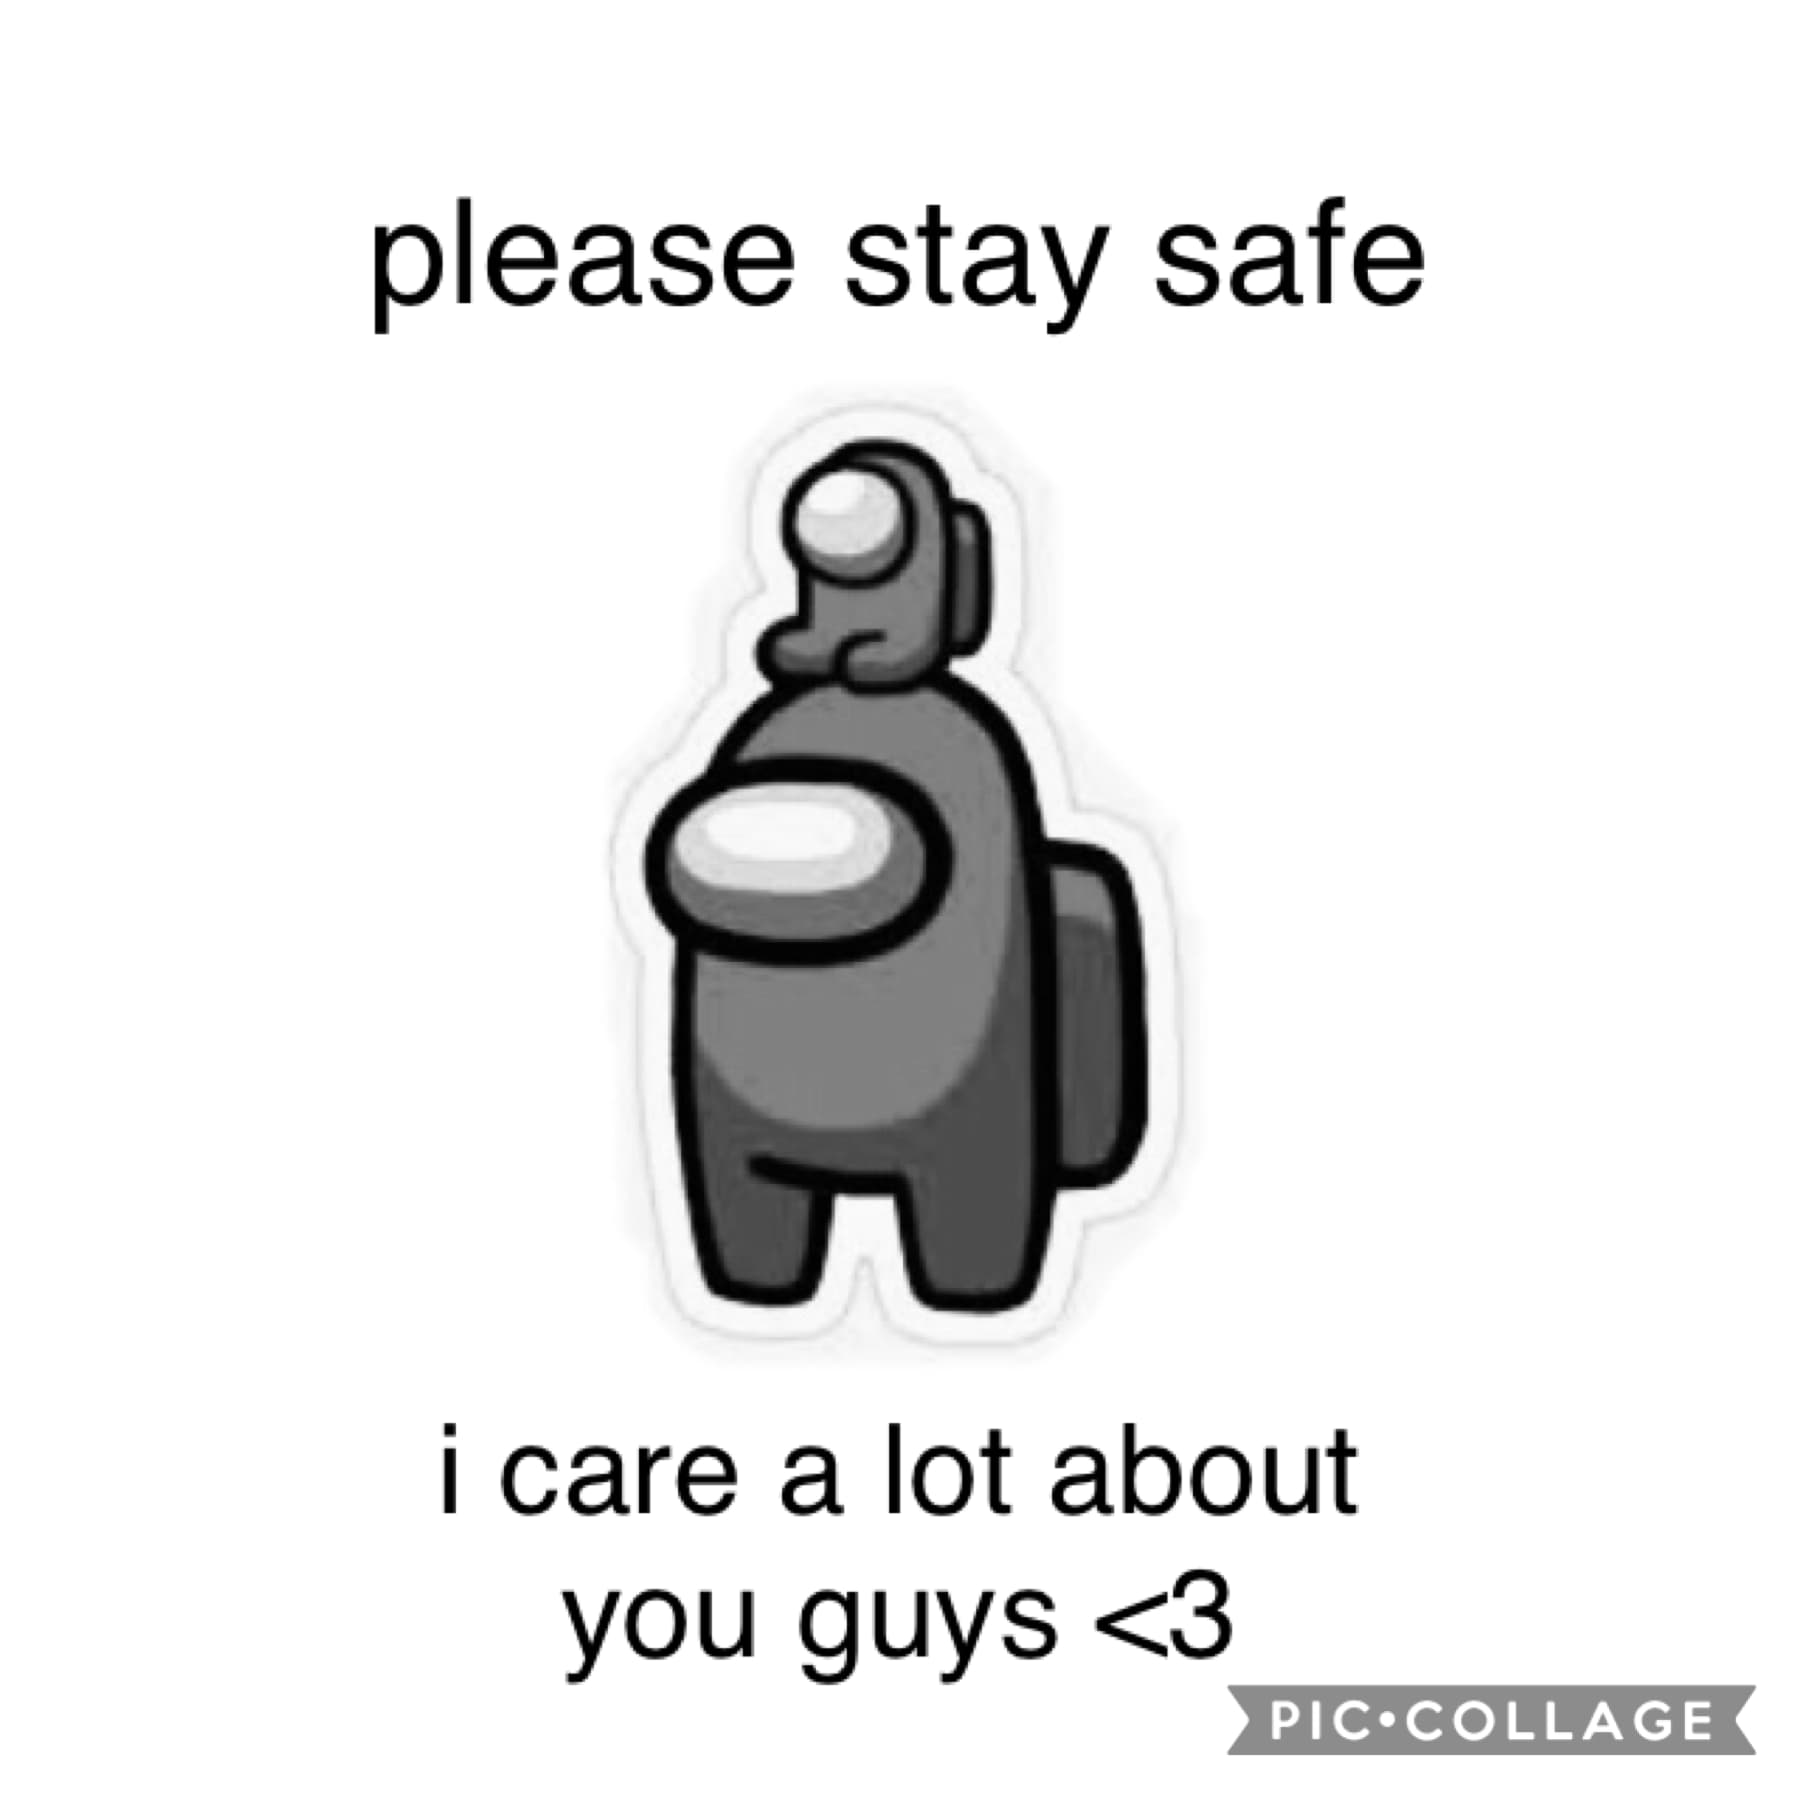 stay safe! (tap) pc is so inactive sheesh positions is out now! maybe a collage coming soon? idk i have no inspo.  ily guys and i want evvvveryone to stay safe🤍